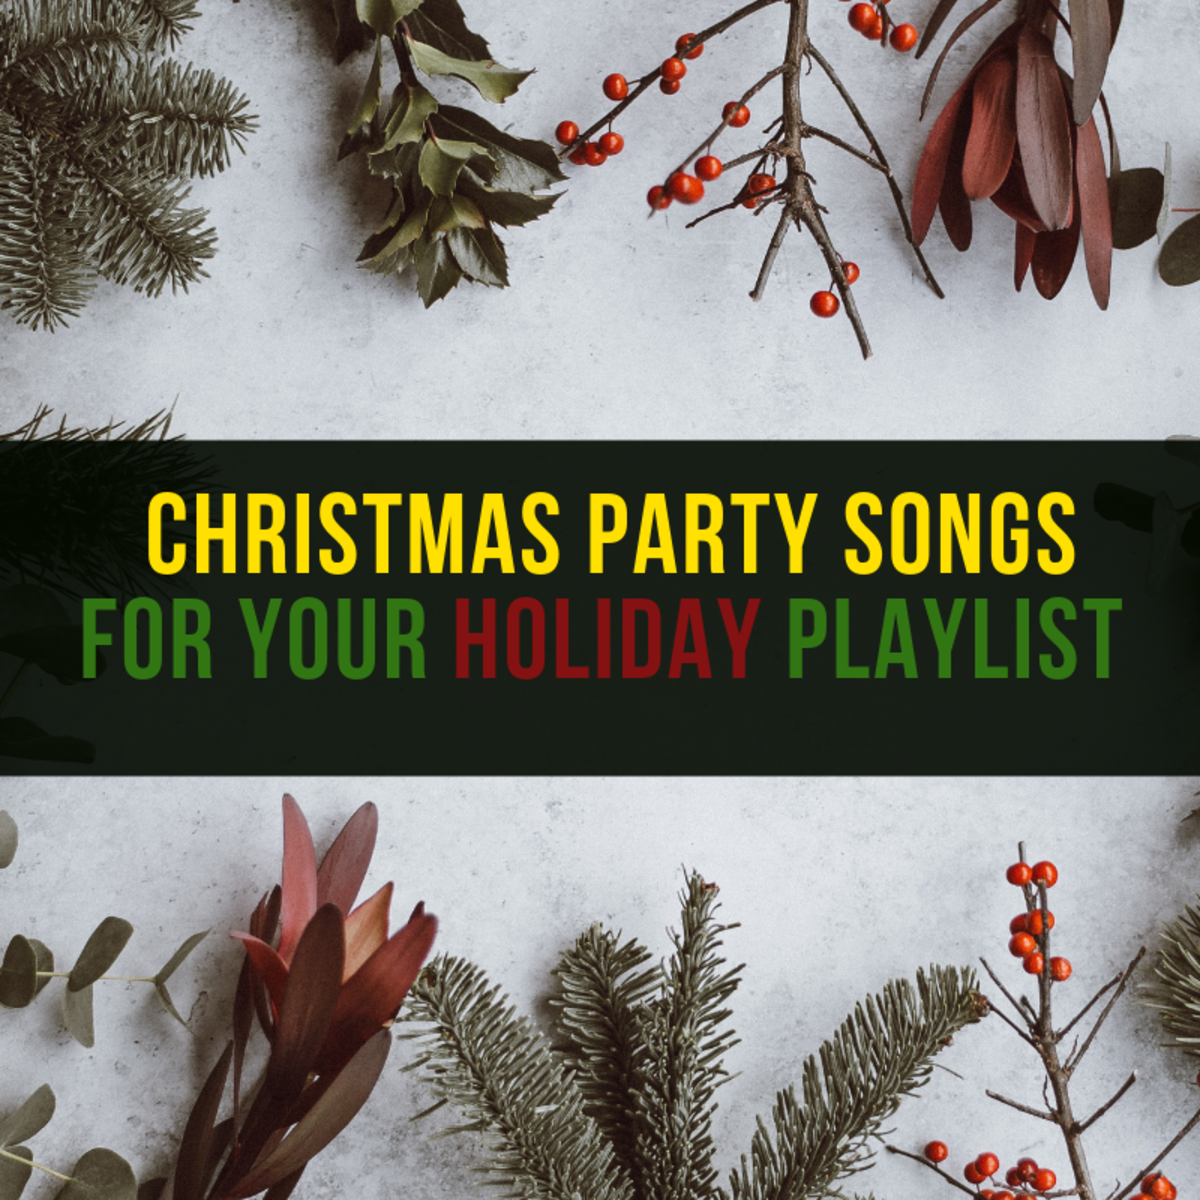 Christmas Music Playlist.25 Christmas Party Songs For Your Holiday Playlist Holidappy